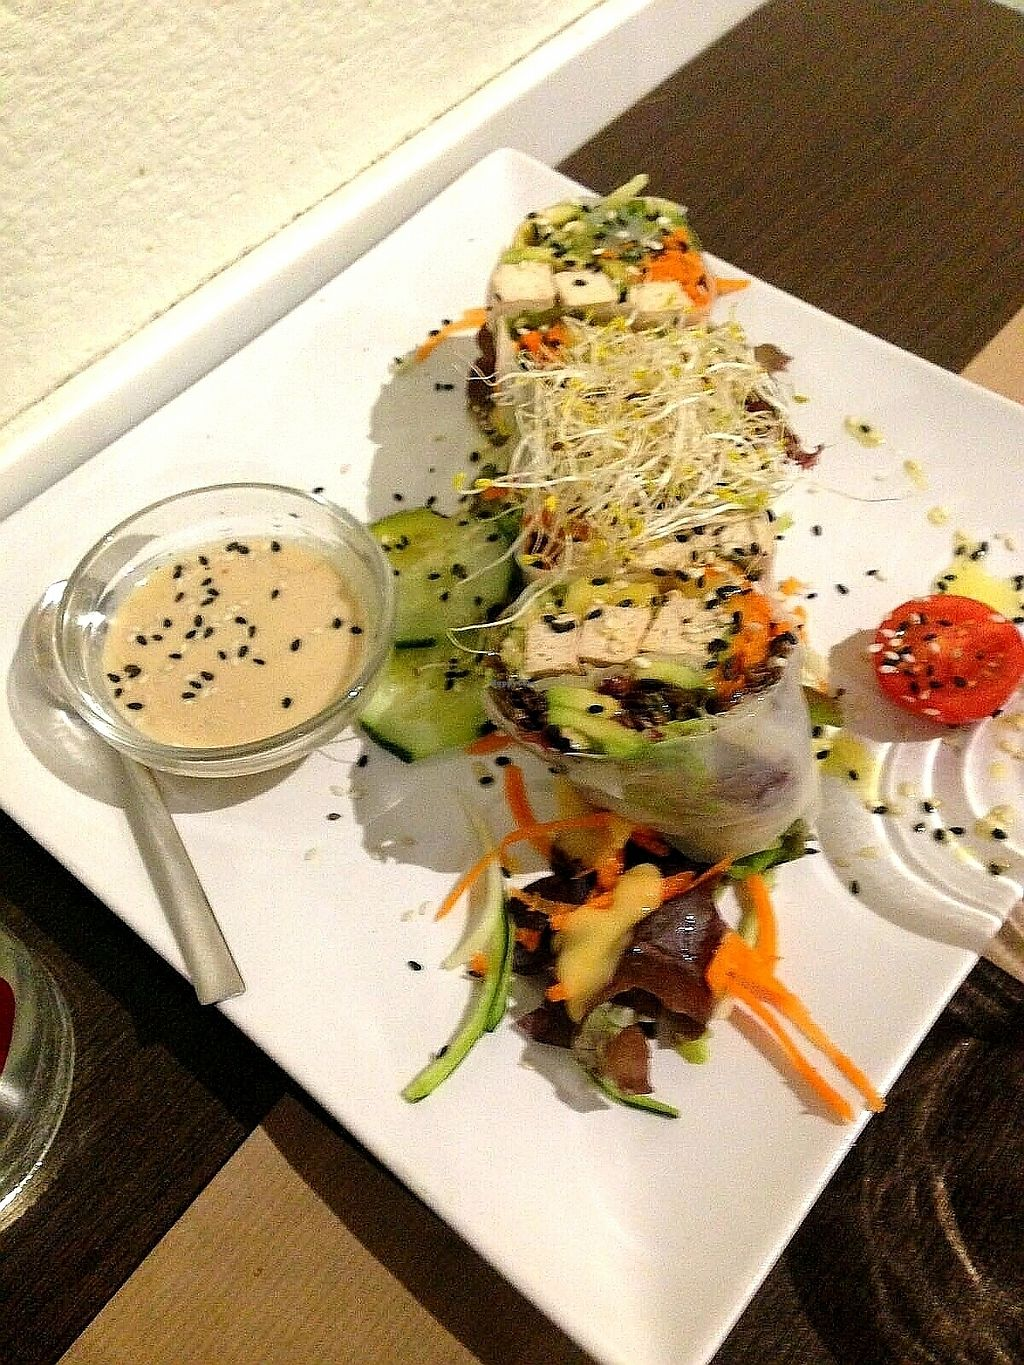 """Photo of La Tastaolletes  by <a href=""""/members/profile/wyrd"""">wyrd</a> <br/>veggie rolls with tofu and peanut sauce <br/> October 15, 2017  - <a href='/contact/abuse/image/11681/315521'>Report</a>"""